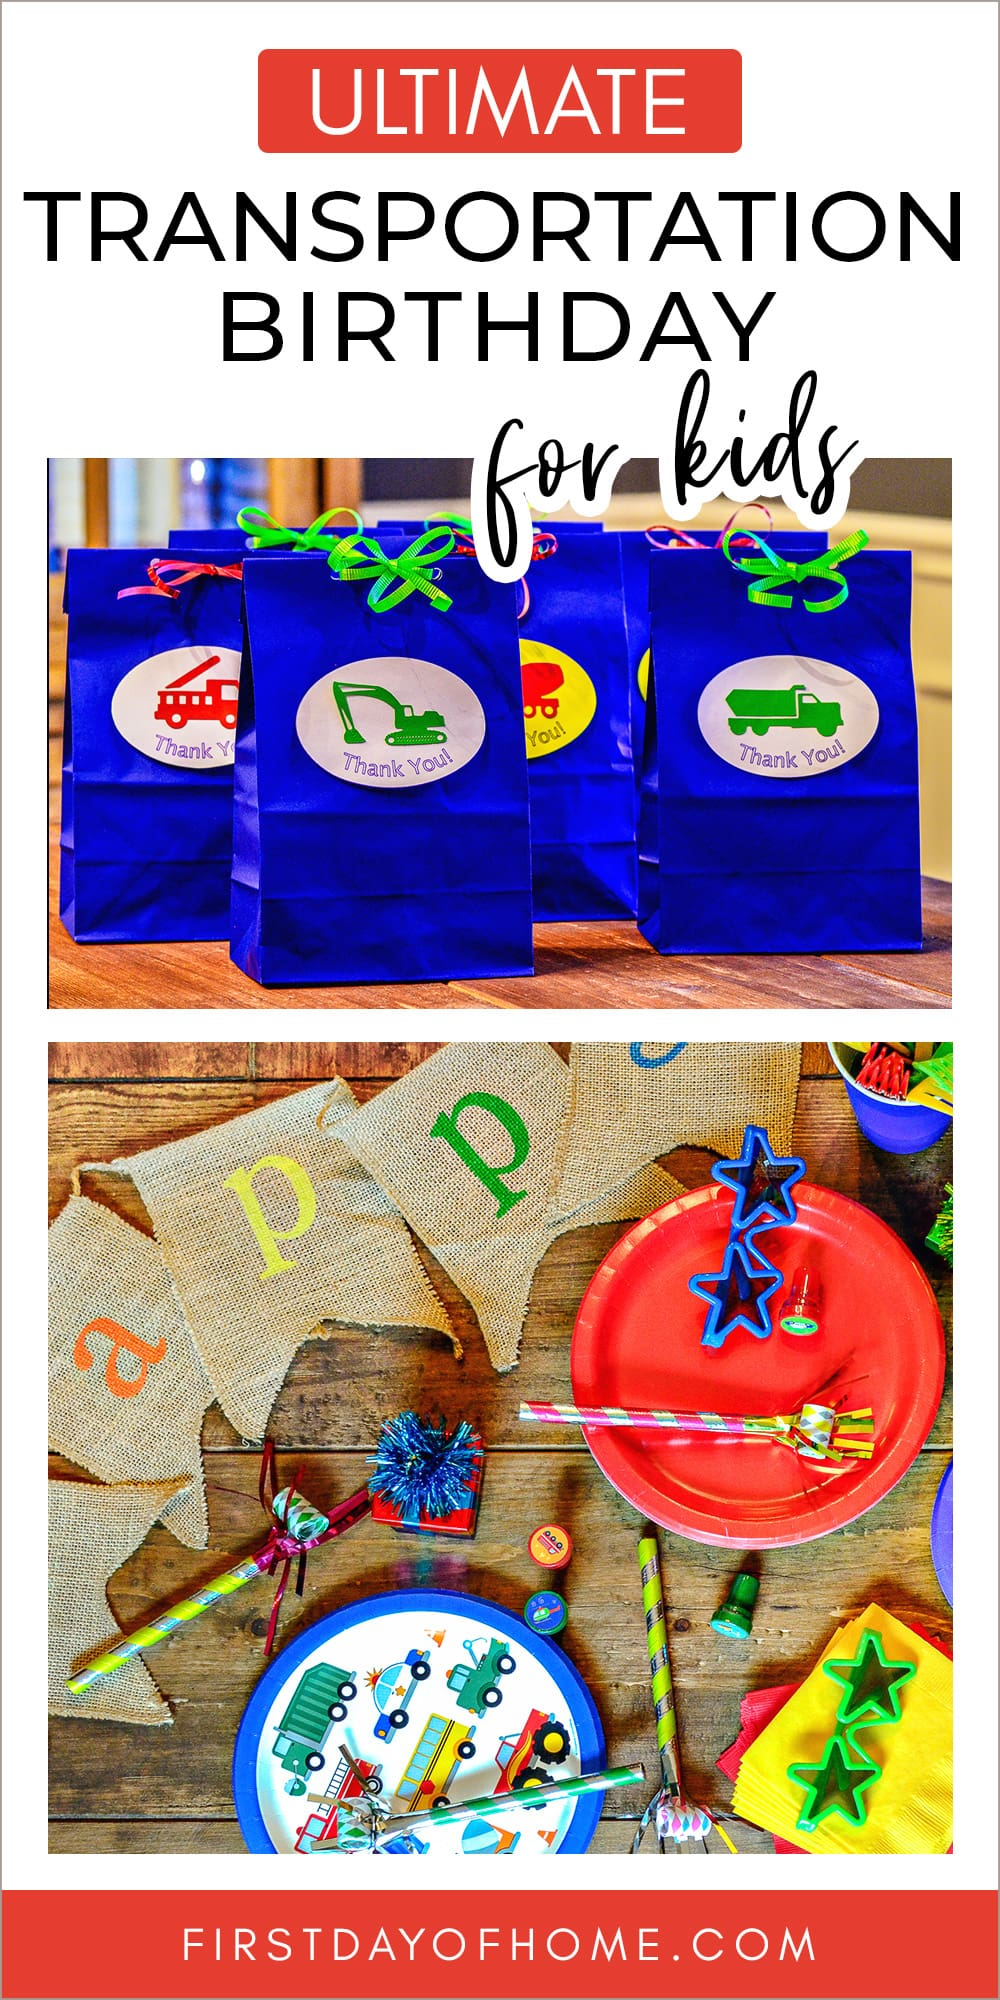 """Transportation party supplies and favor bags with text overlay reading """"Ultimate Transportation Birthday for Kids"""""""